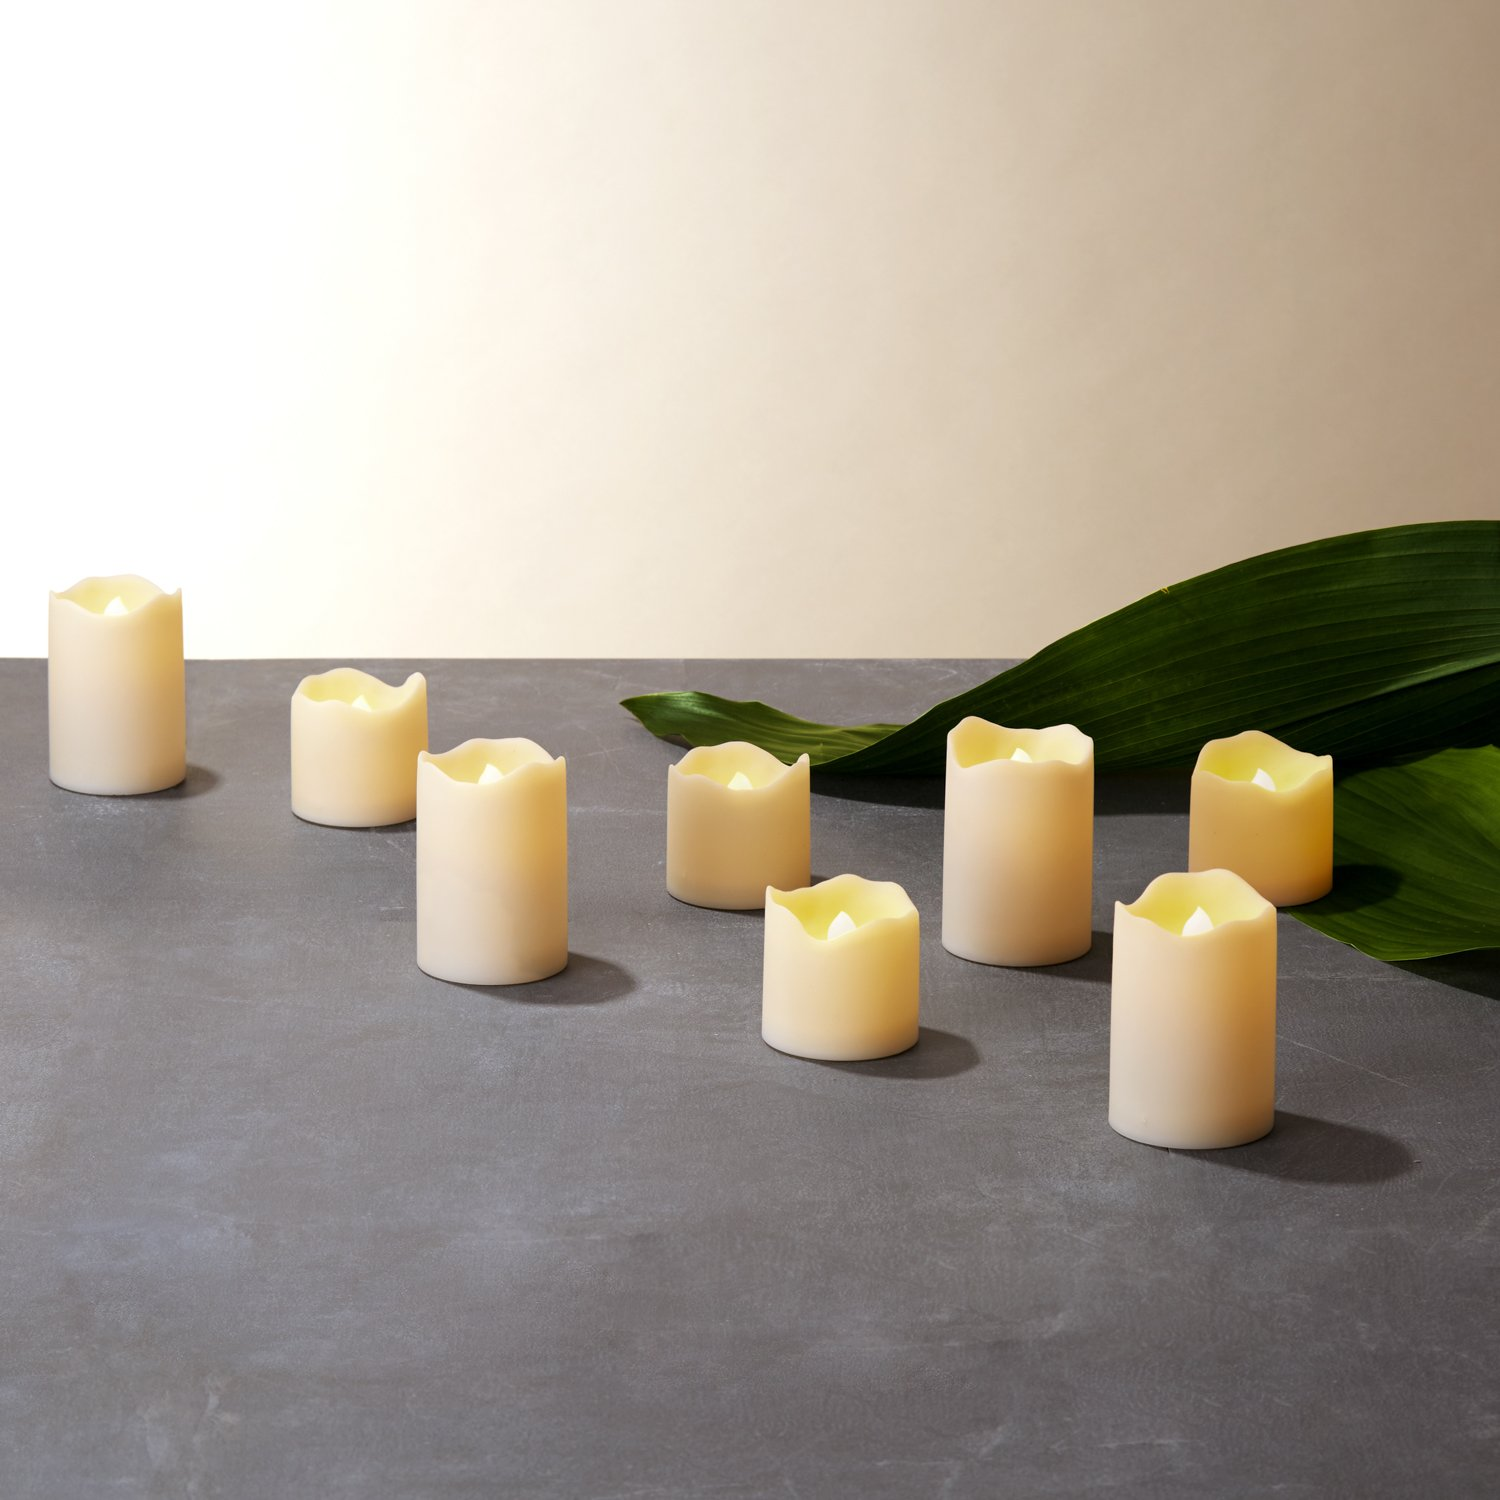 Outdoor Flameless Votive Candles, Warm White and Color Changing LEDs, Battery Operated, Water Resistant, Ivory Resin Candle Set, Batteries Included - 8 Pack